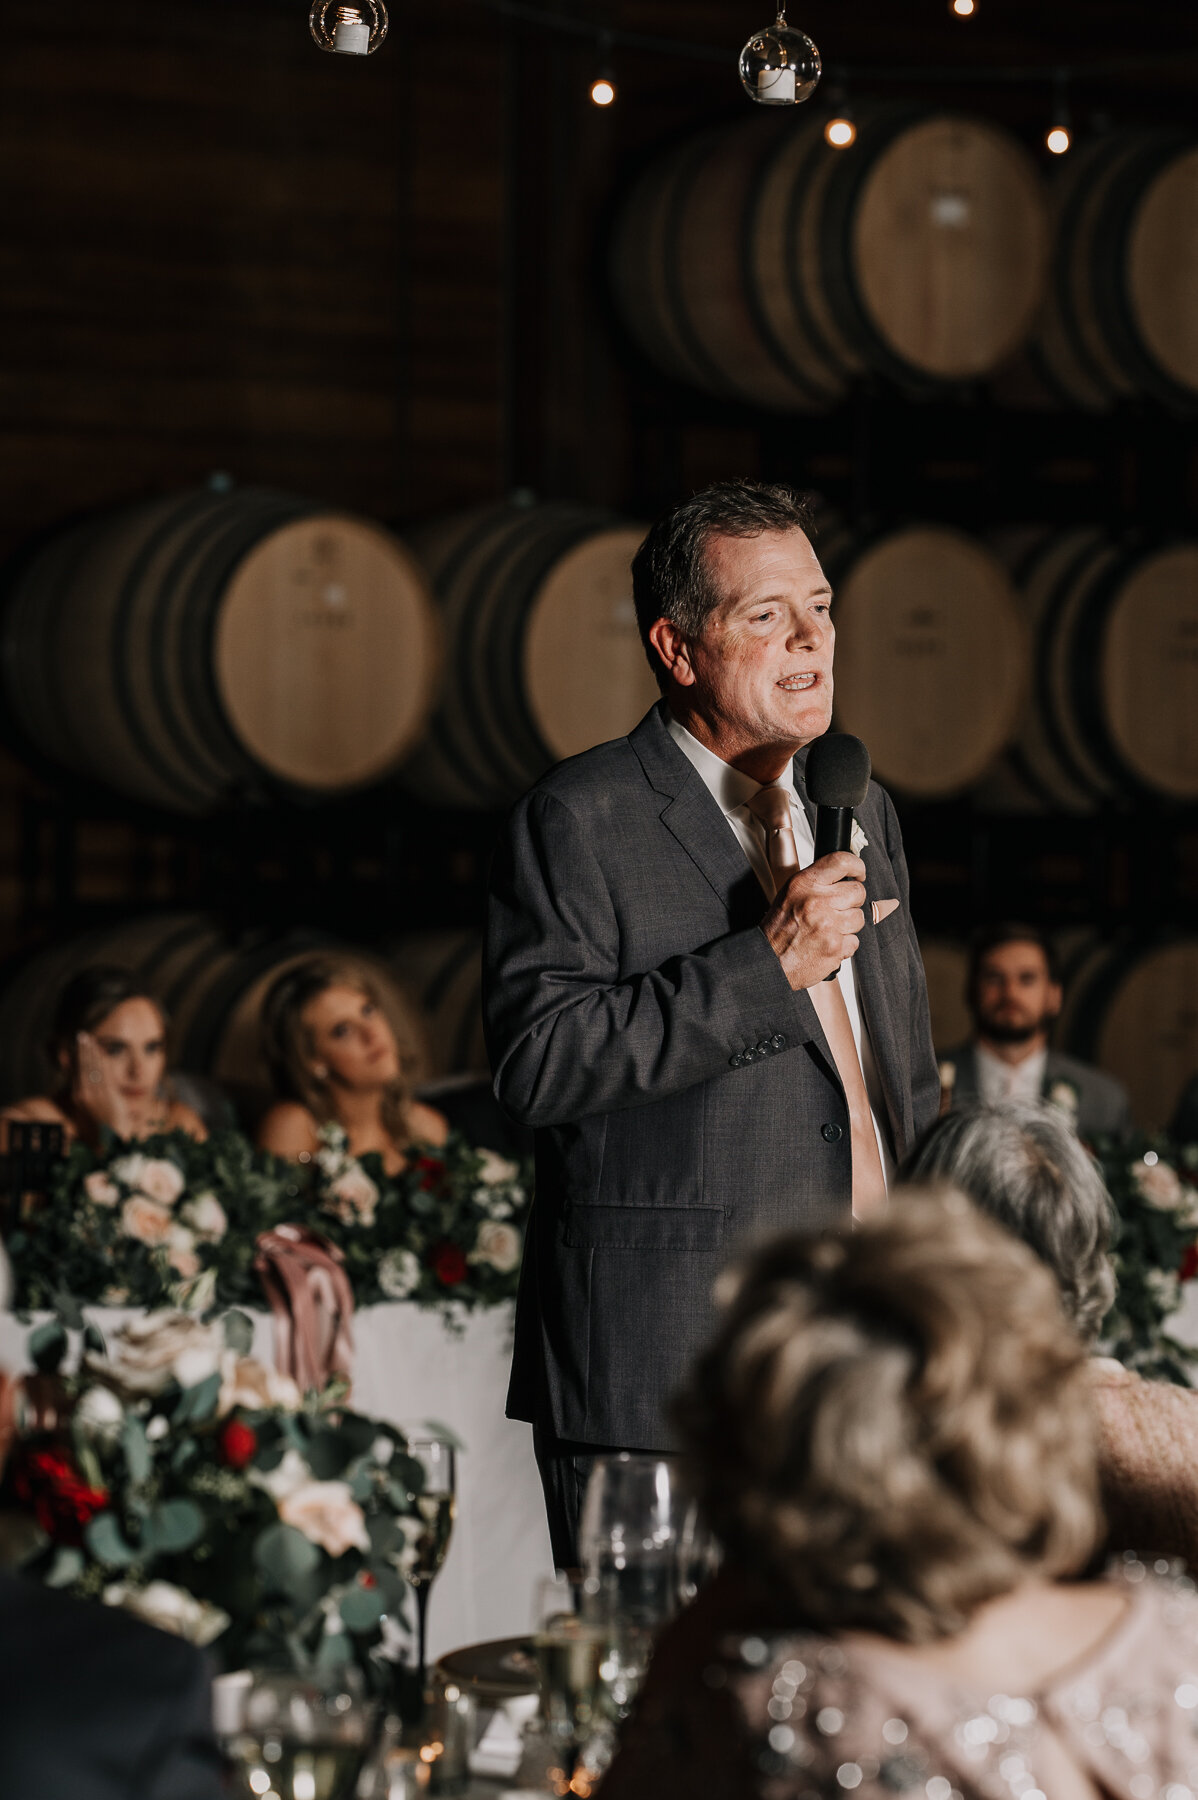 1058Swiftwater Cellars Wedding_Cle Elum Wedding_Montana Wedding Photographer_Kat & Kyle_September 15, 2018-1455.jpg